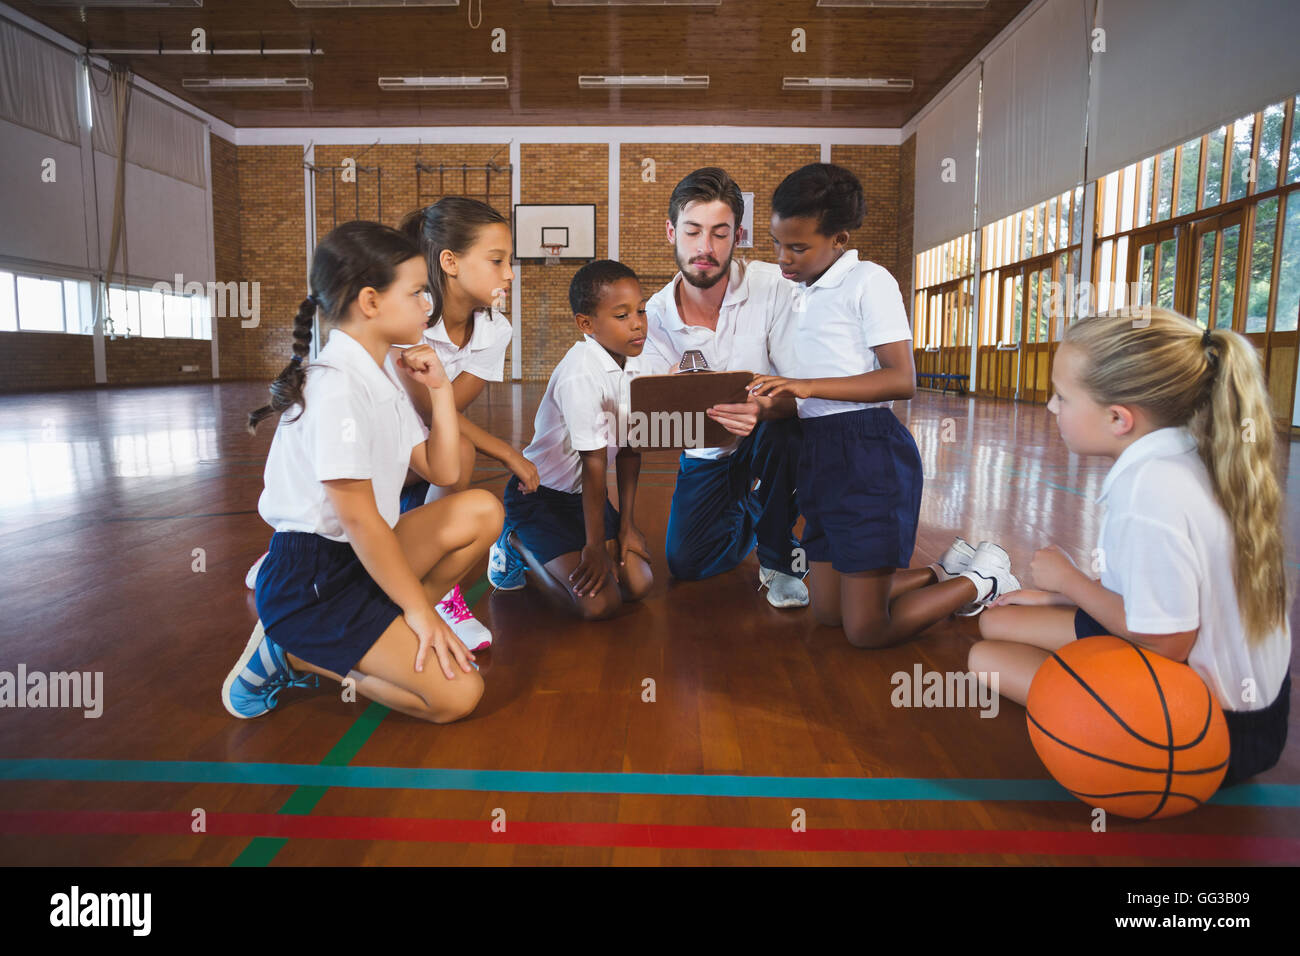 Sport teacher and school kids discussing on clipboard in basketball court - Stock Image